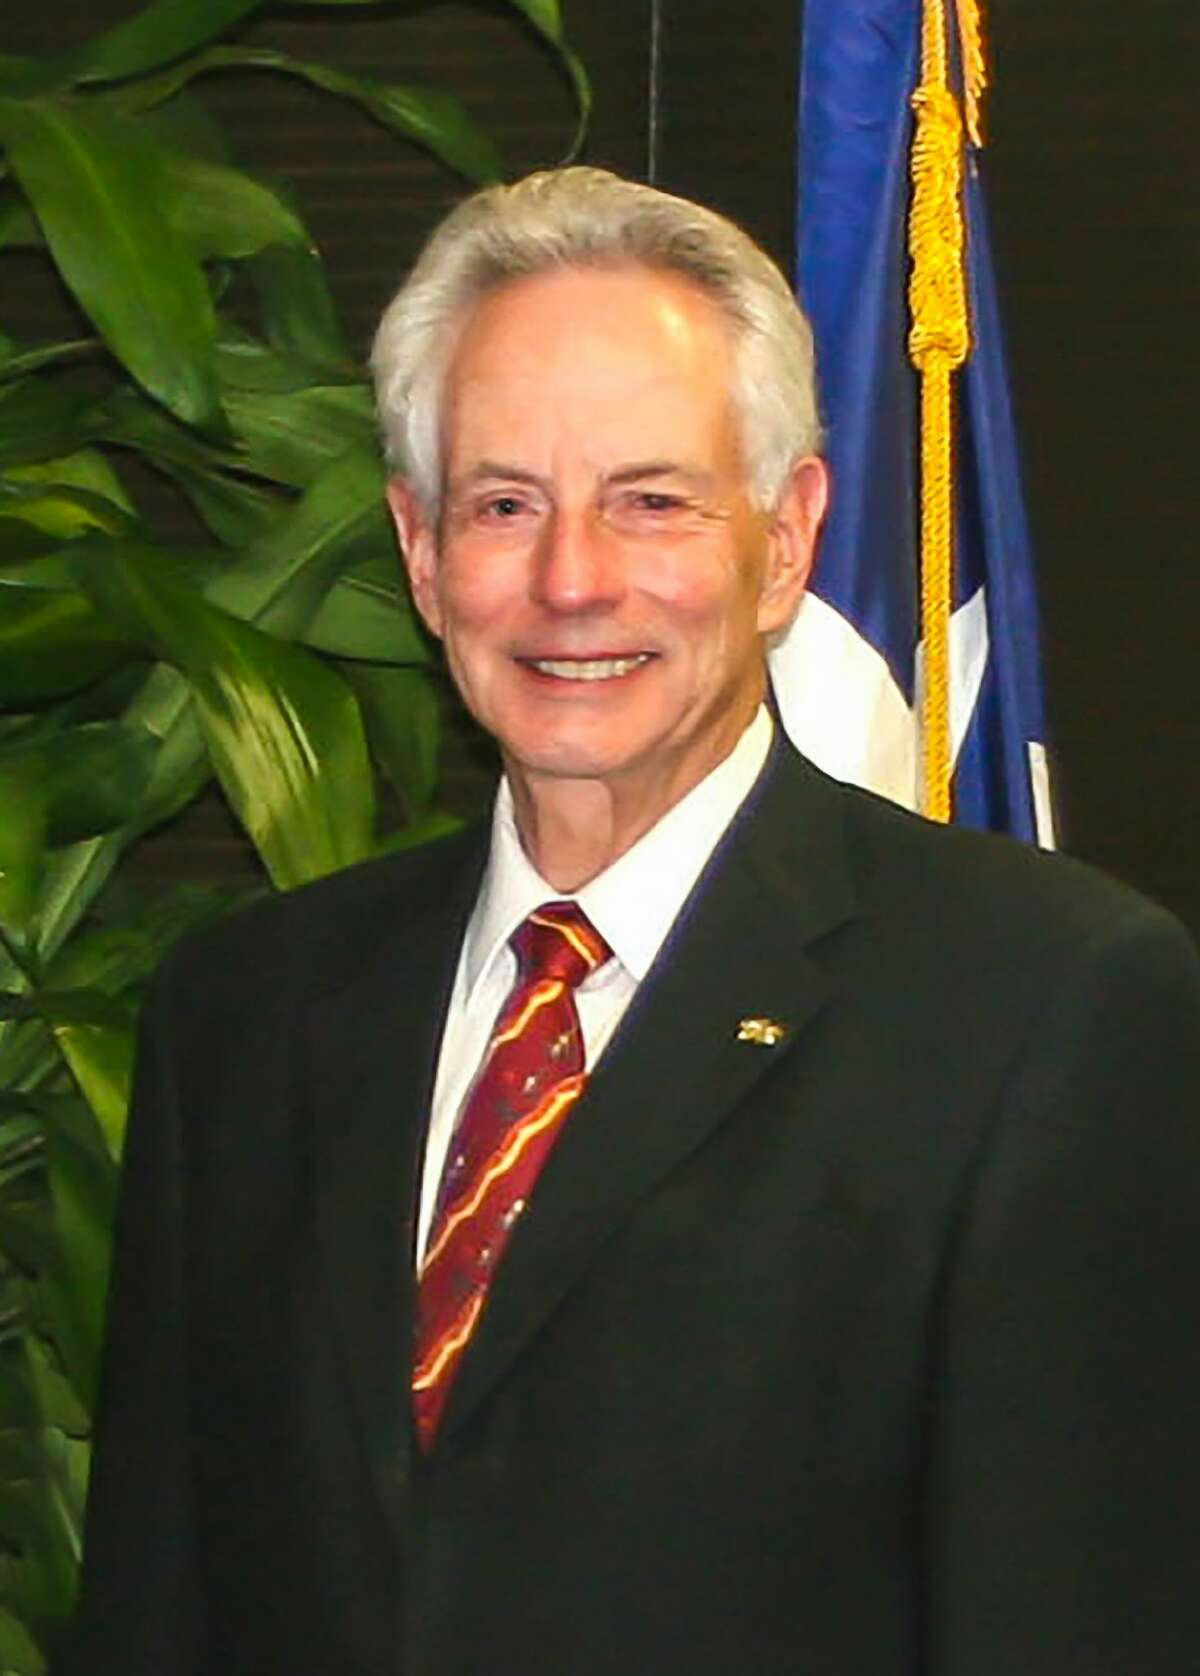 Will Green, a 24-year member of the Midland College board of Trustees.